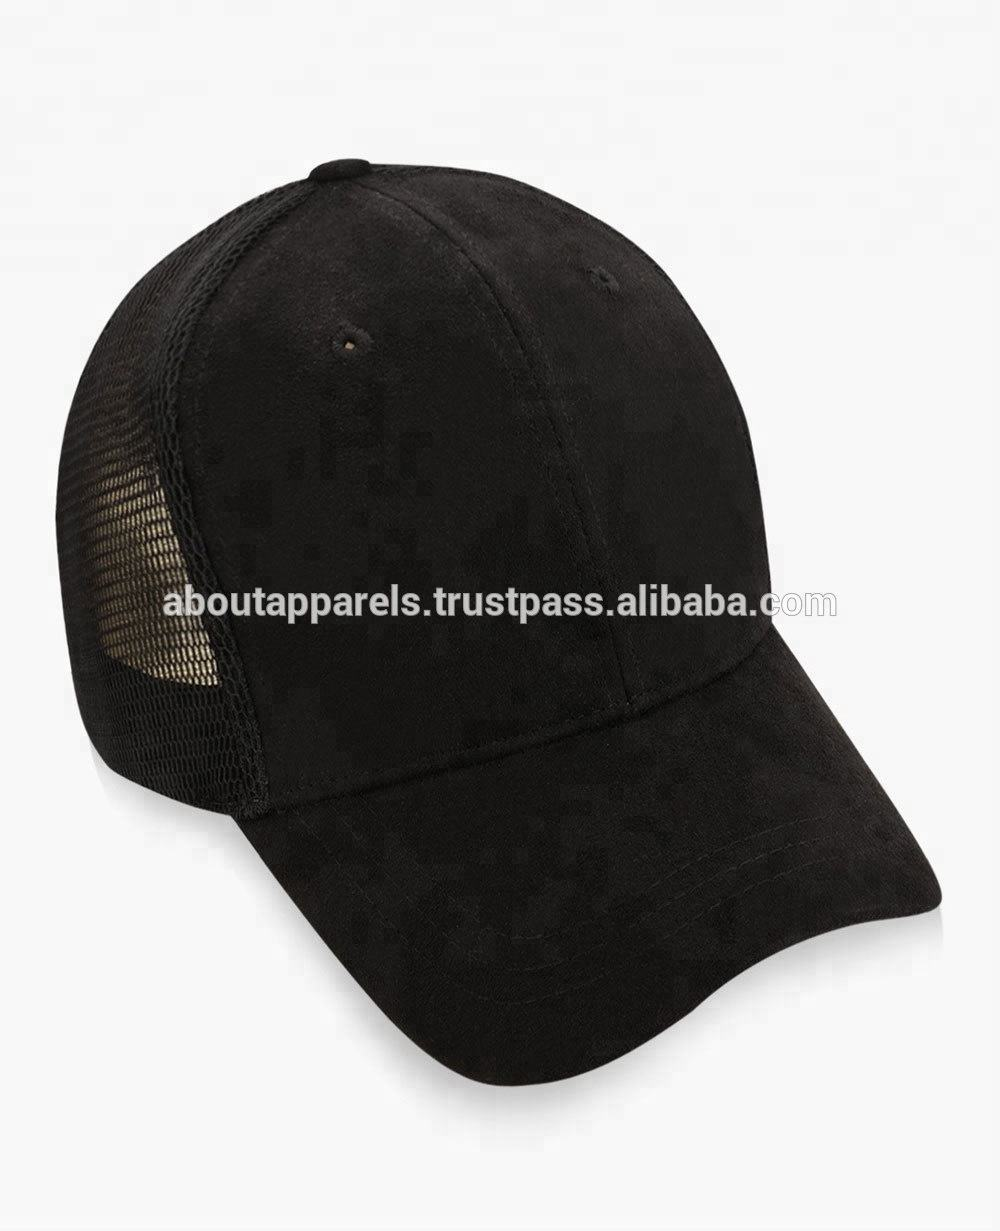 2018 new custom factory direct baseball dad hat custom 100% cotton cap and hat customized sports